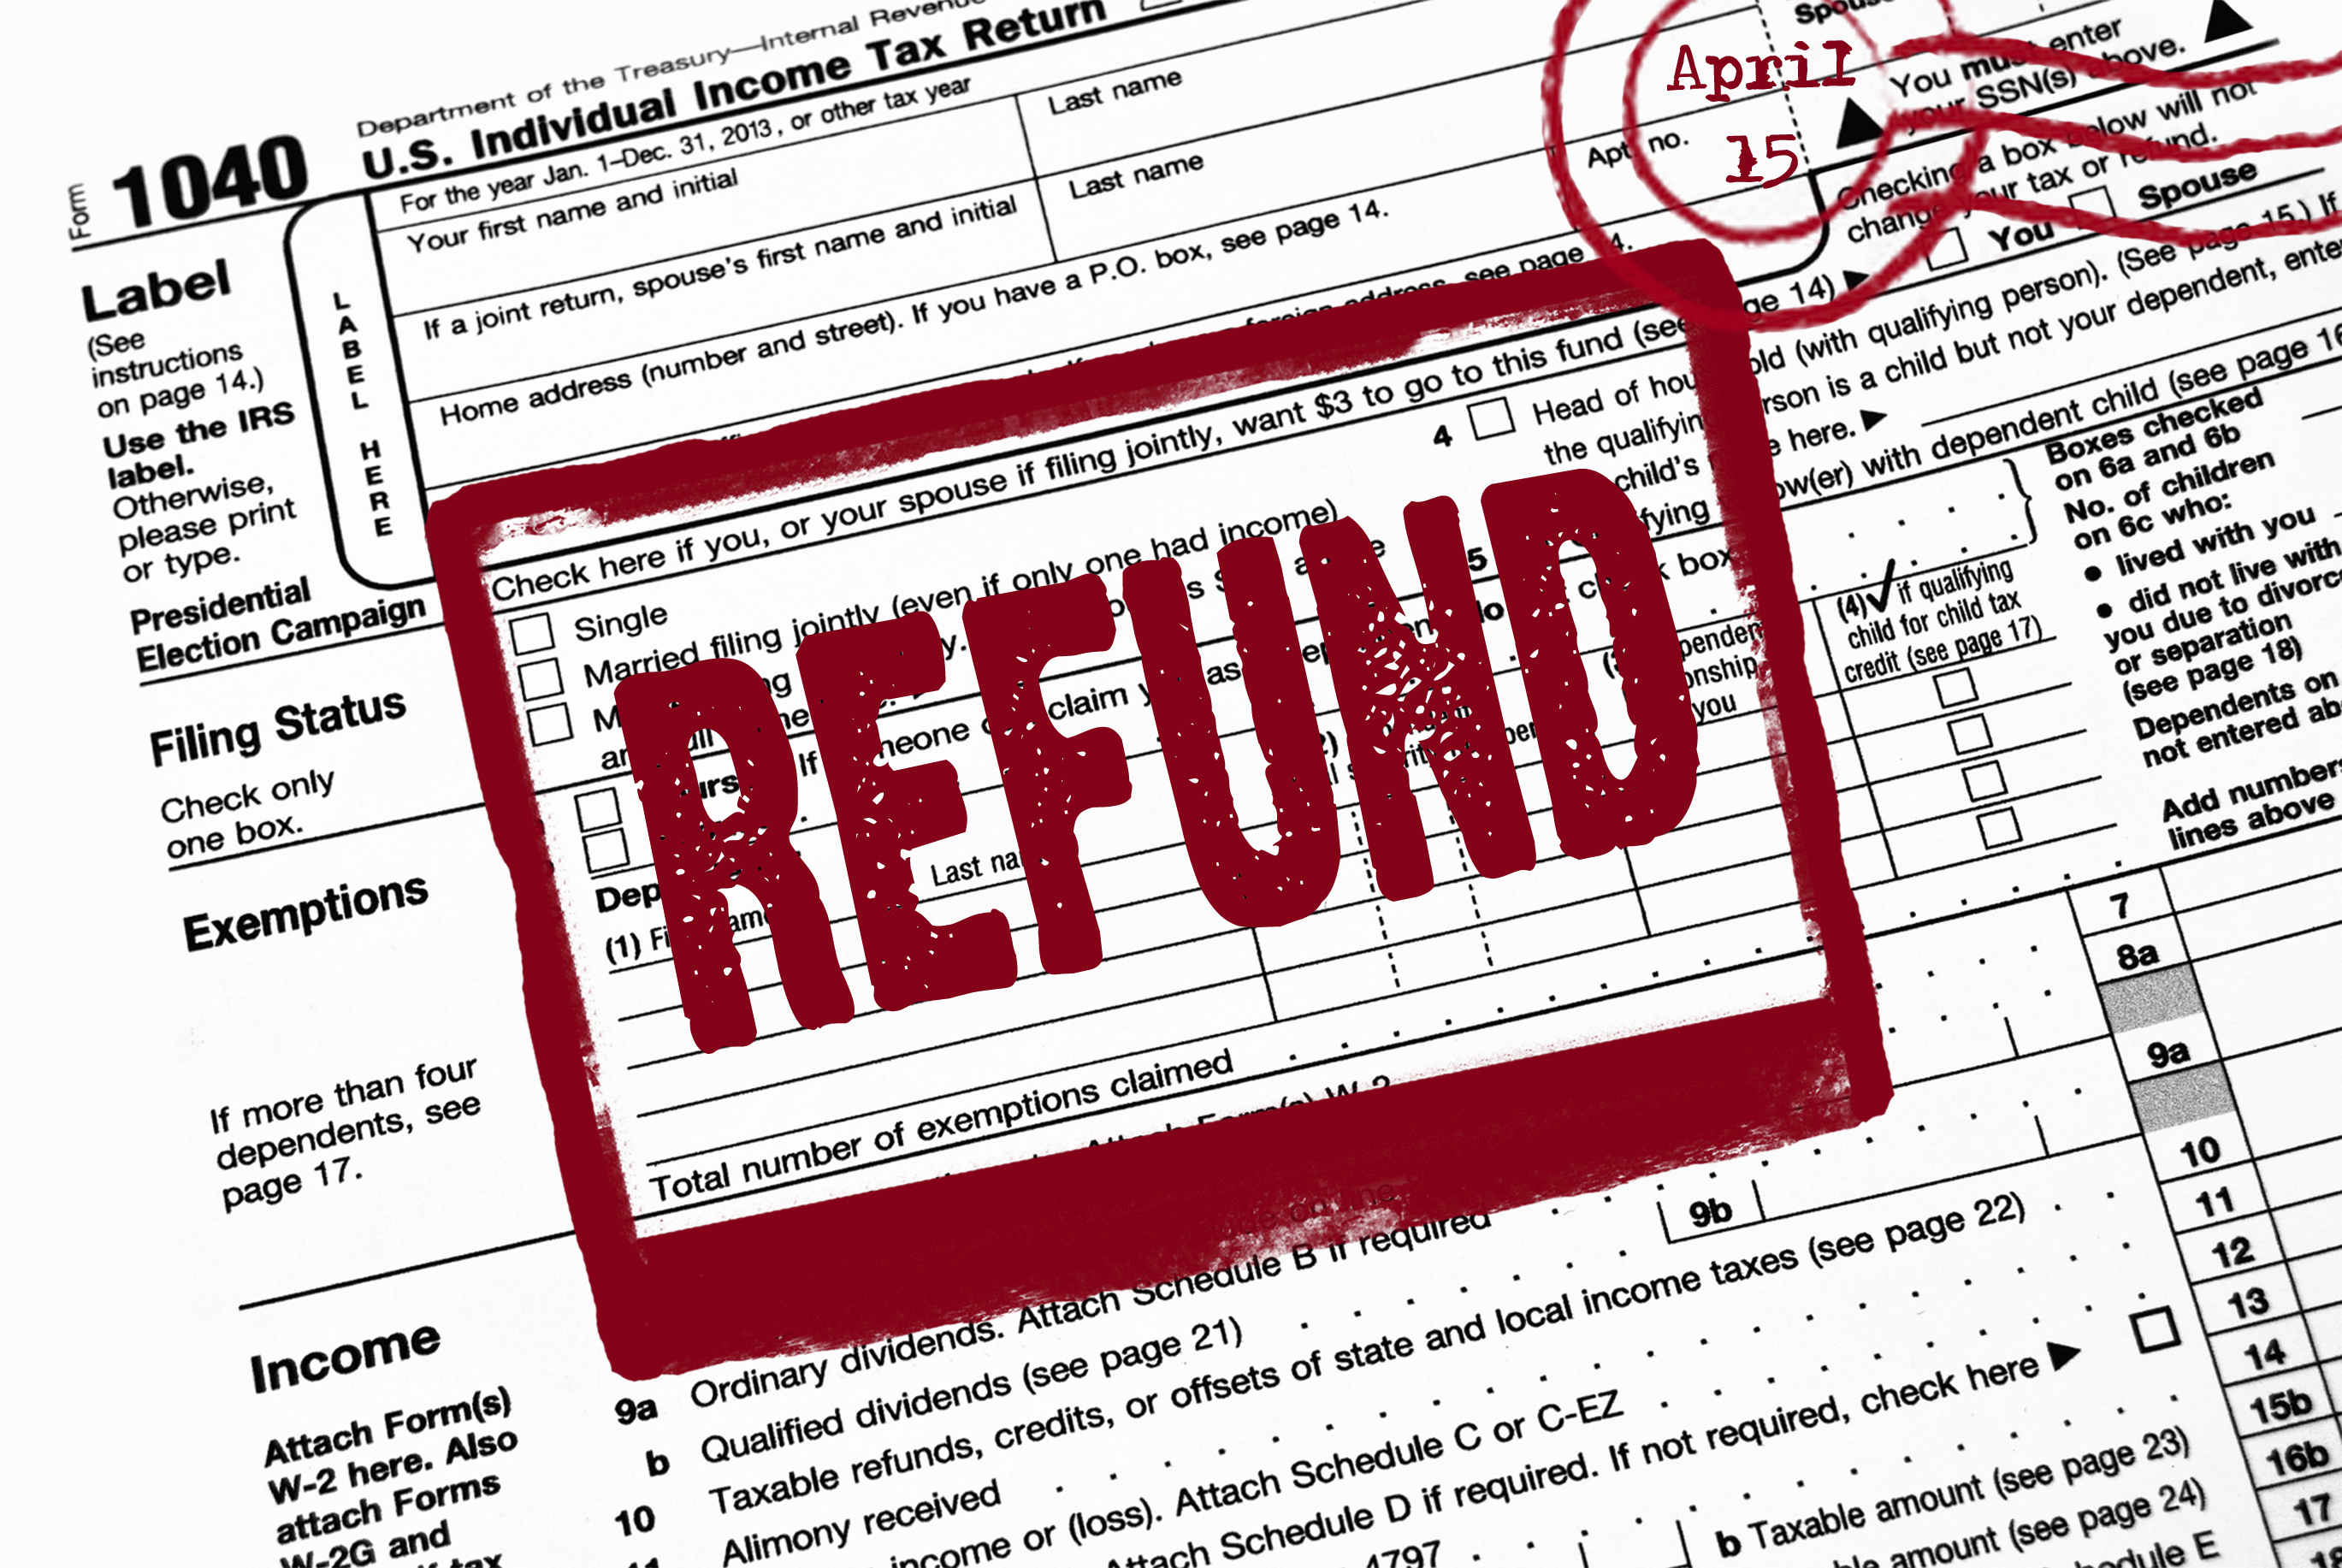 How to Find Out If a Federal Tax Return Has Been Processed | Pocketsense